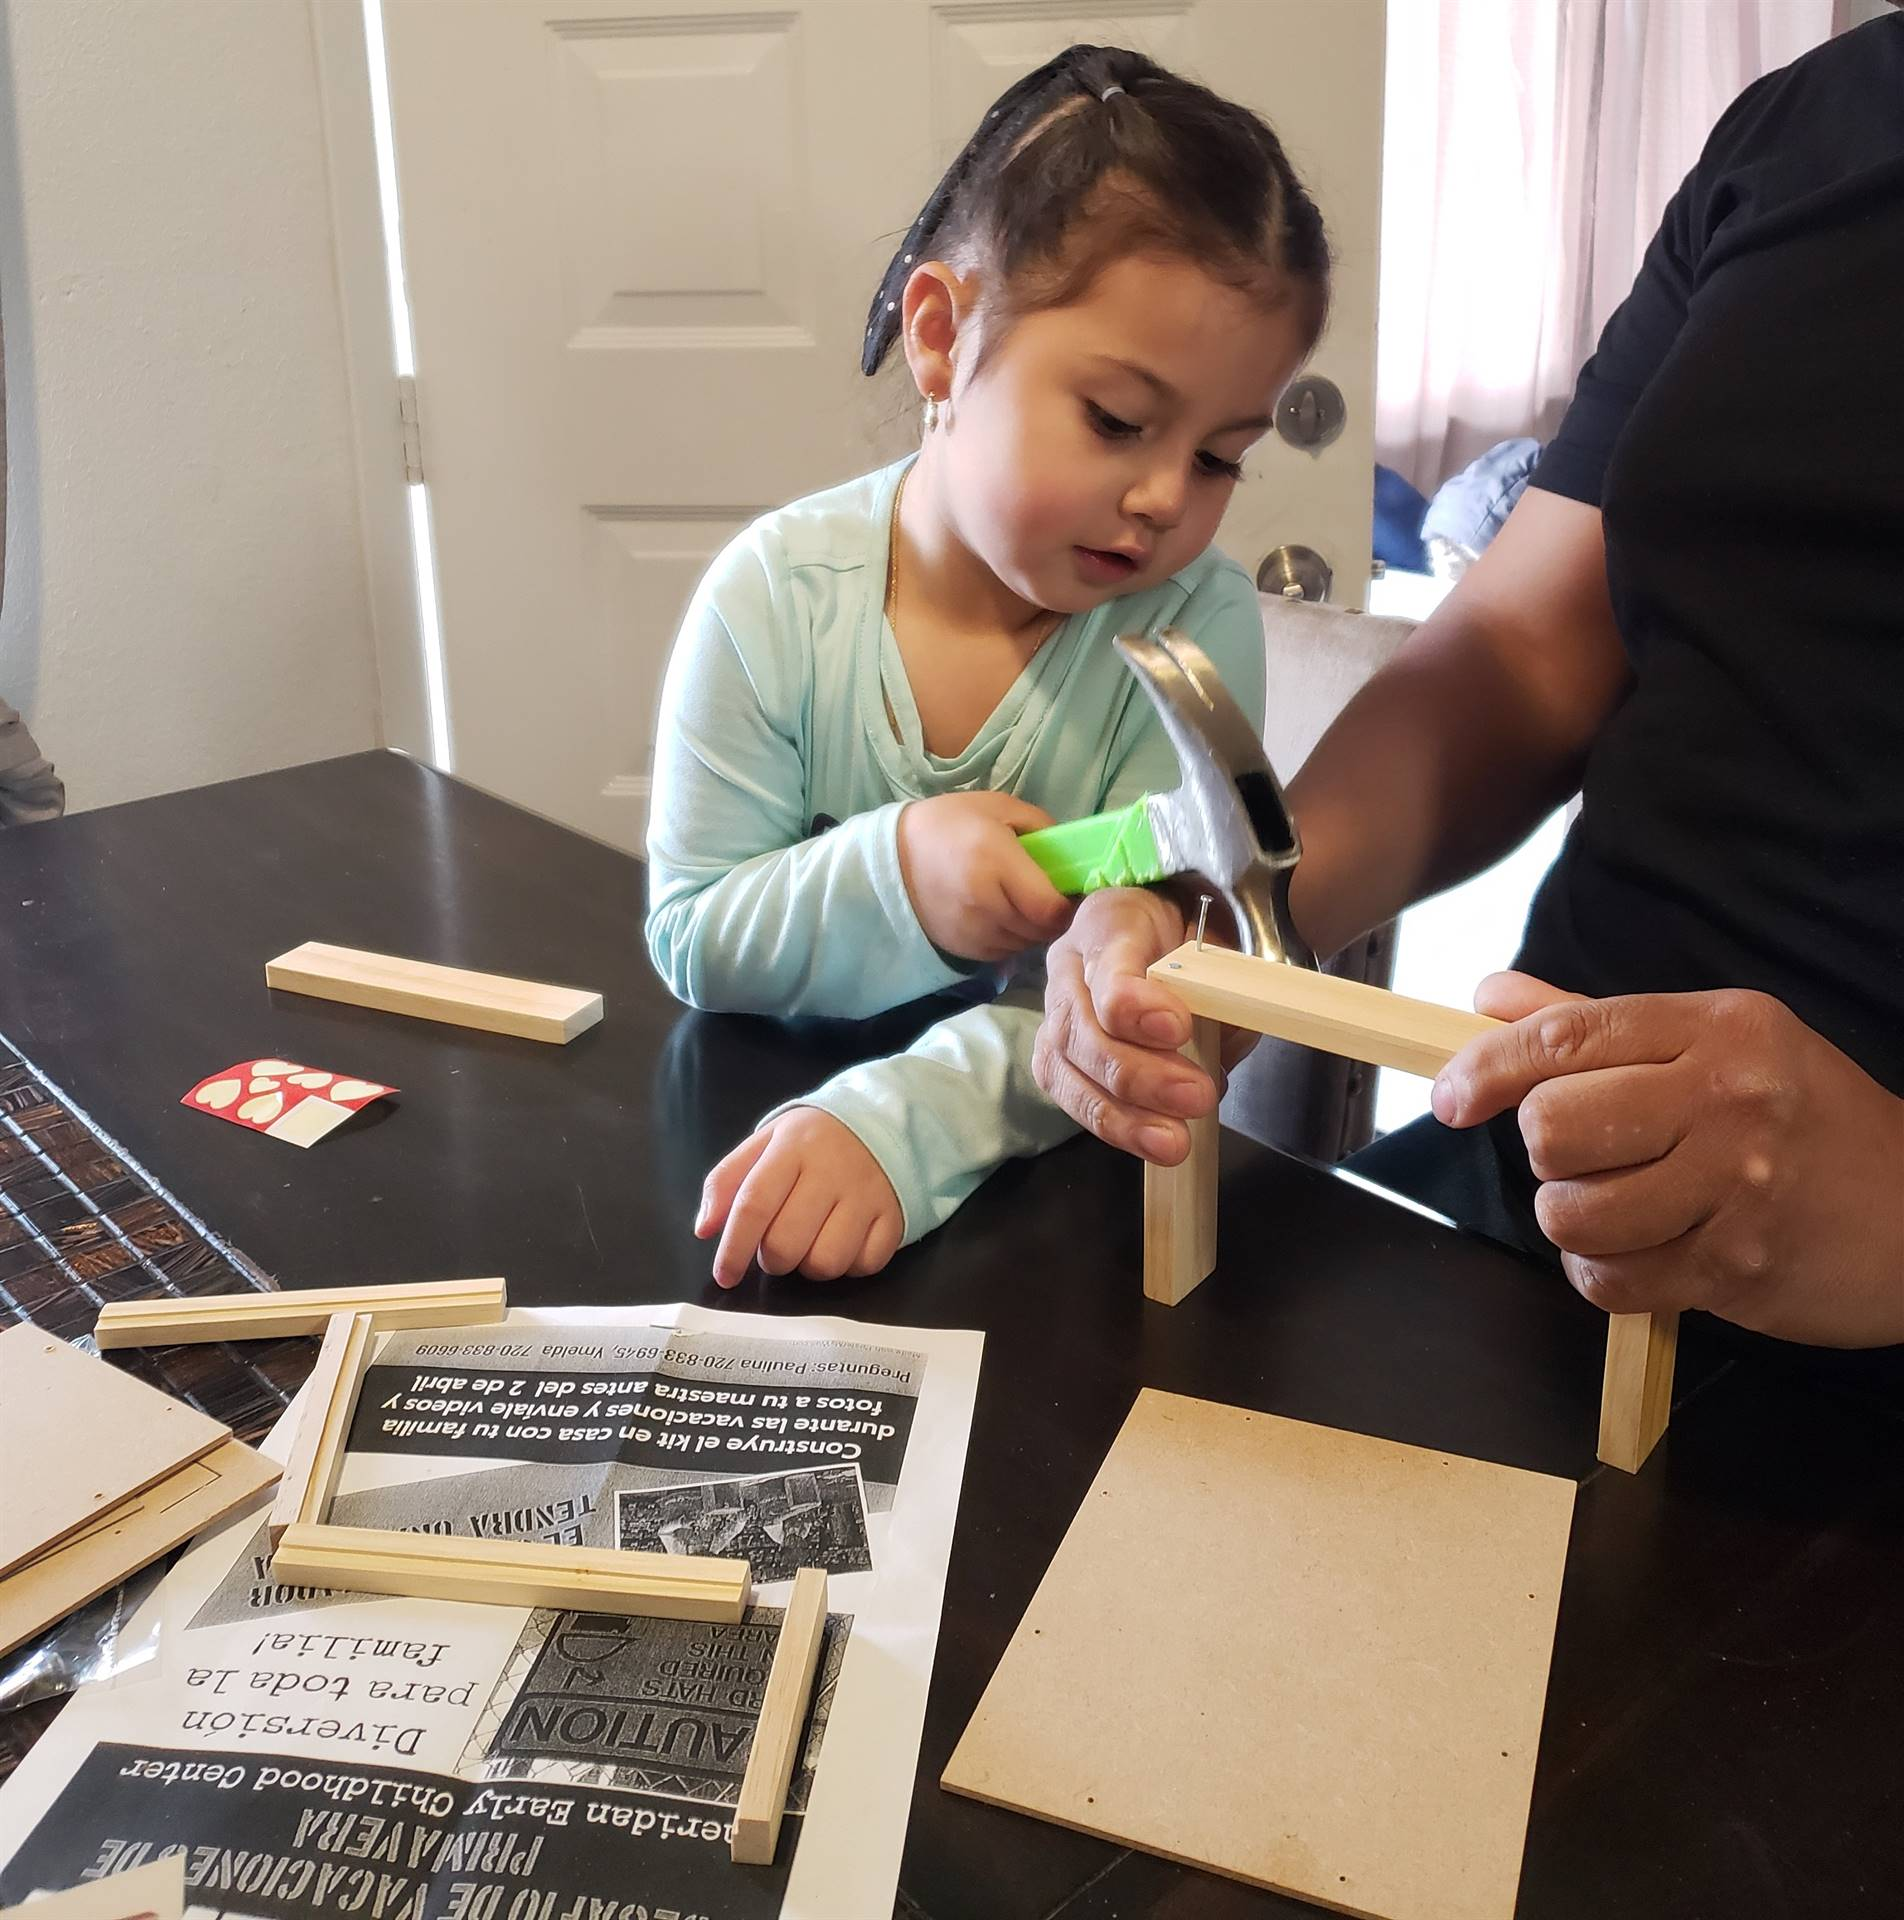 A little and her Dad carefully hammer to build her Home Depot Kit project.